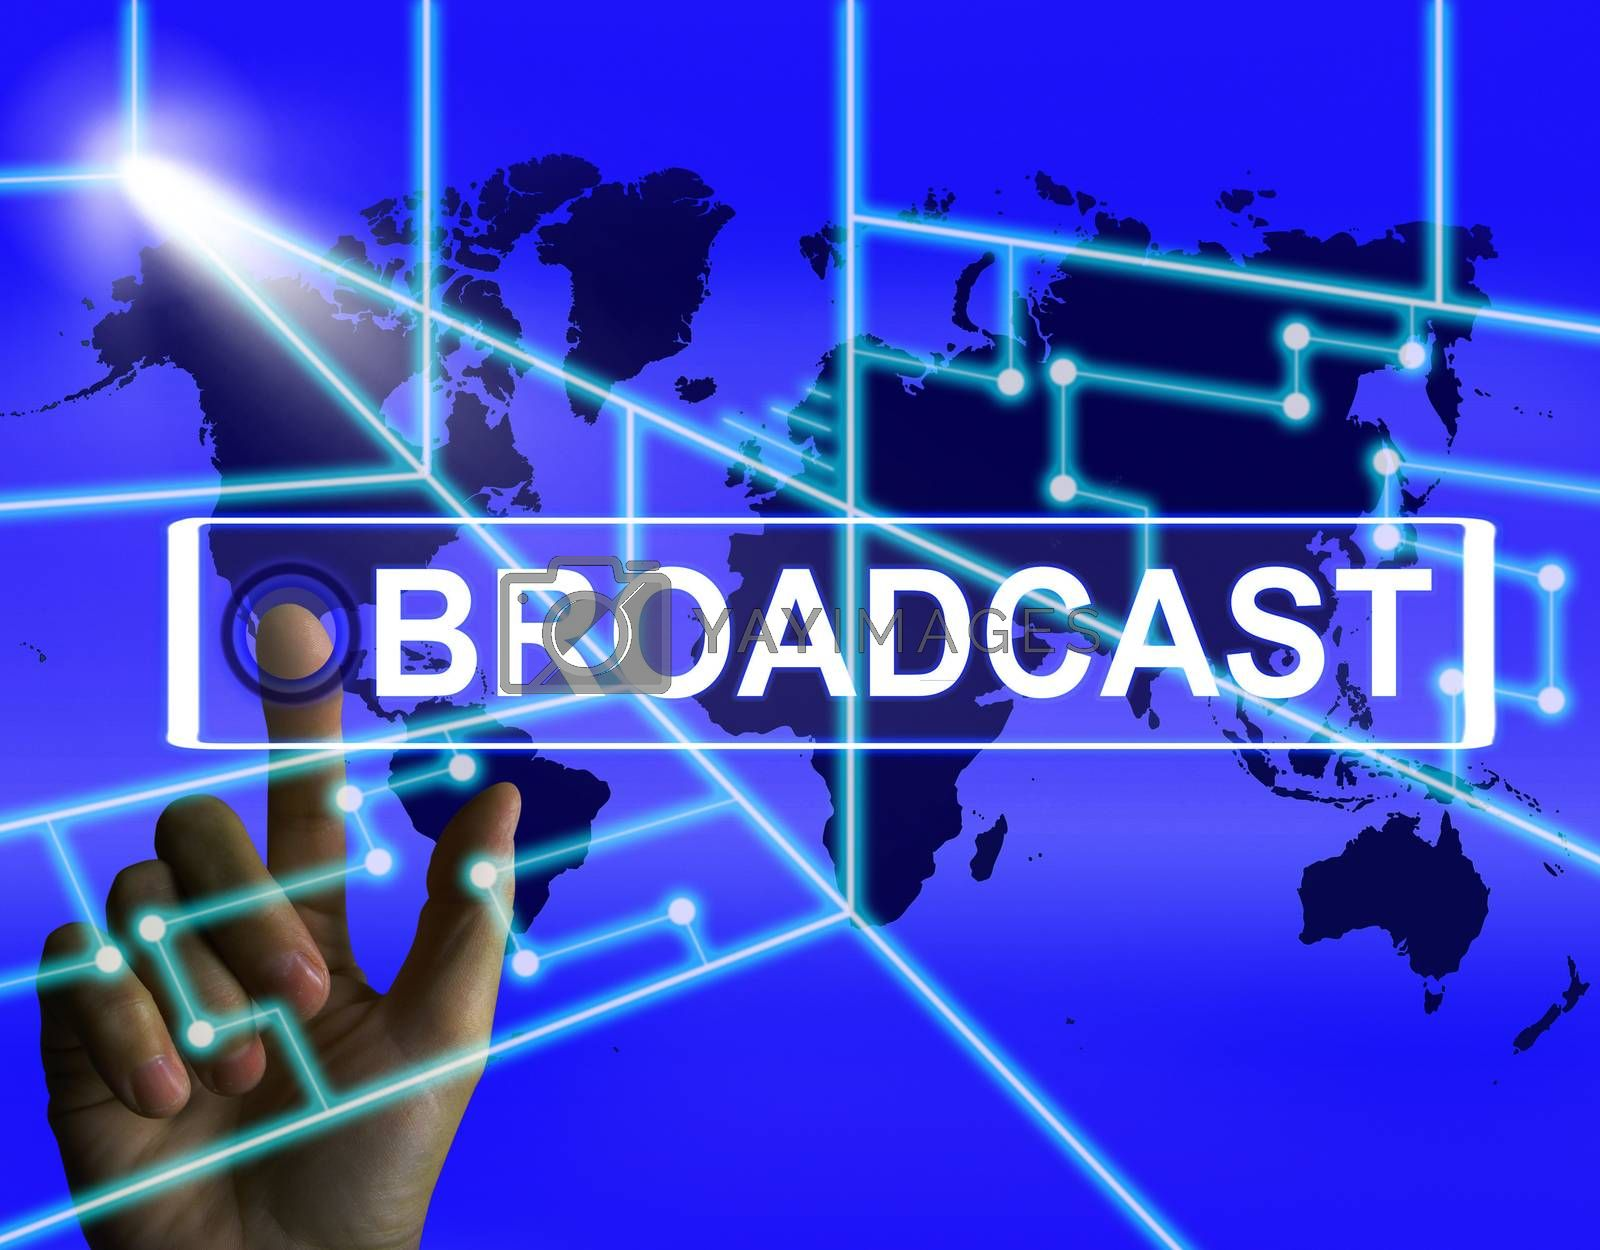 Broadcast Screen Shows International Broadcasting and Transmissi by stuartmiles